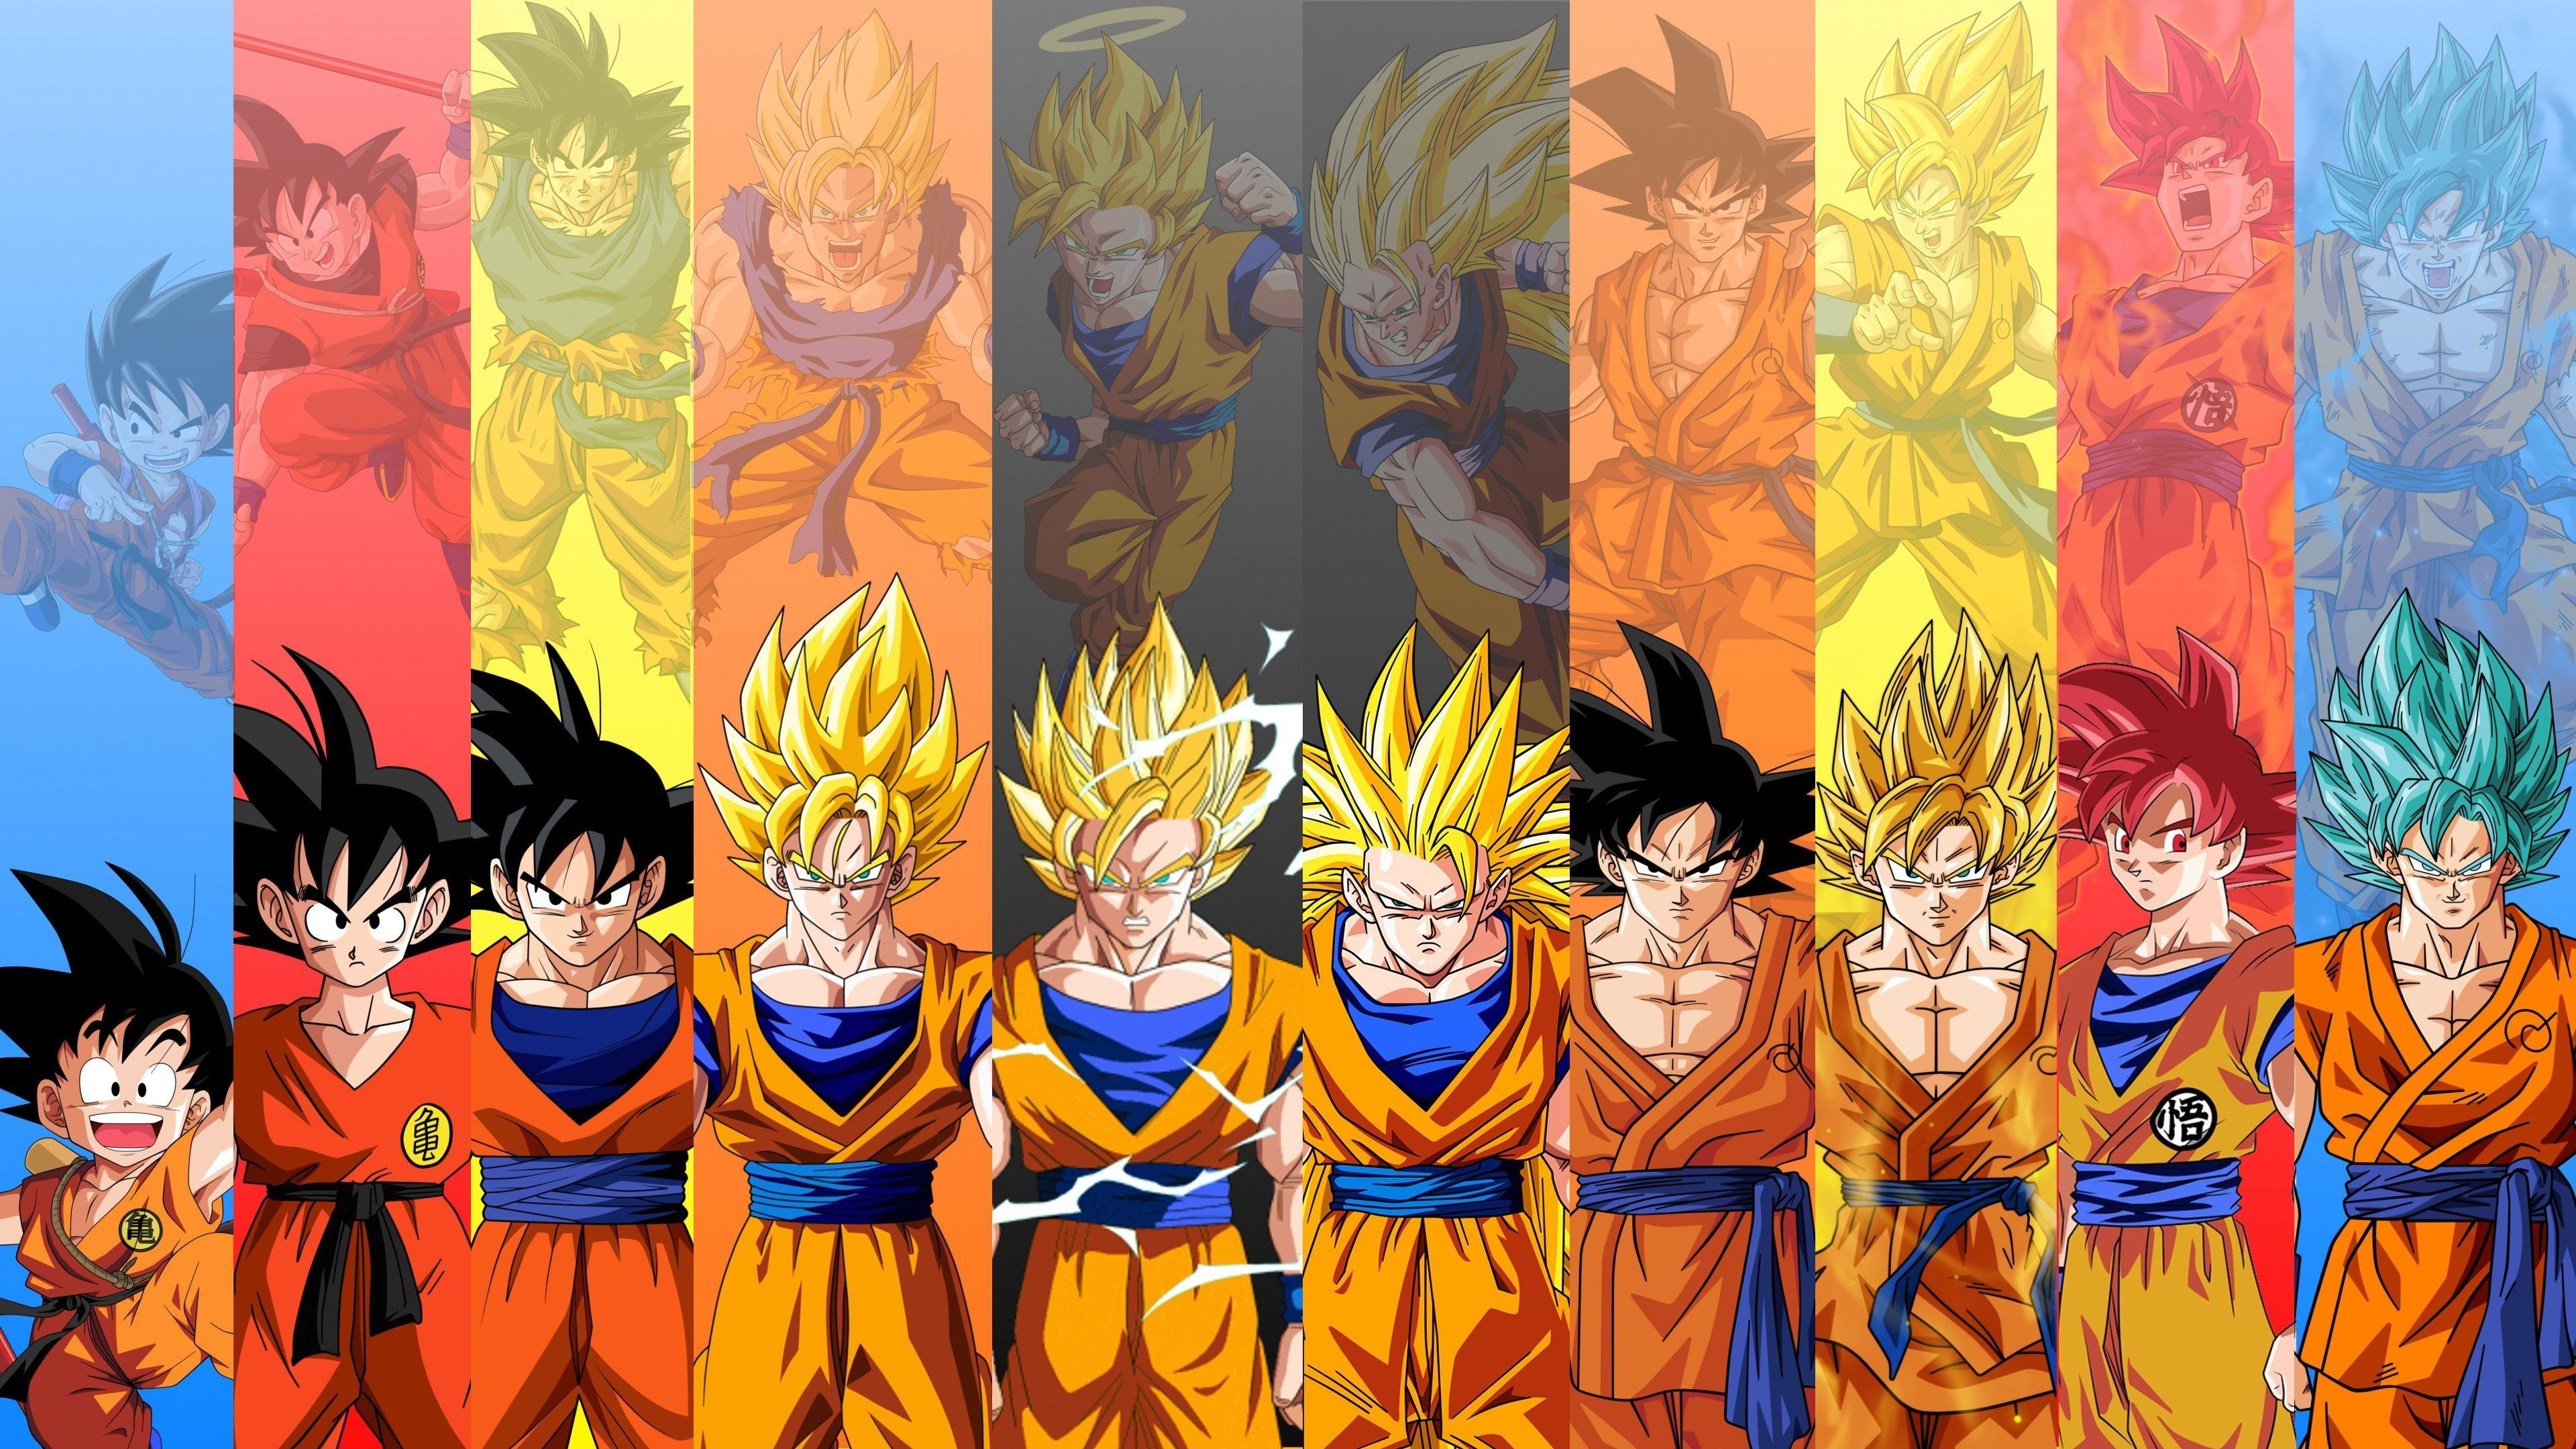 Unique Dragon Ball Z Wallpapers Goku All Super Saiyans Wallpaper